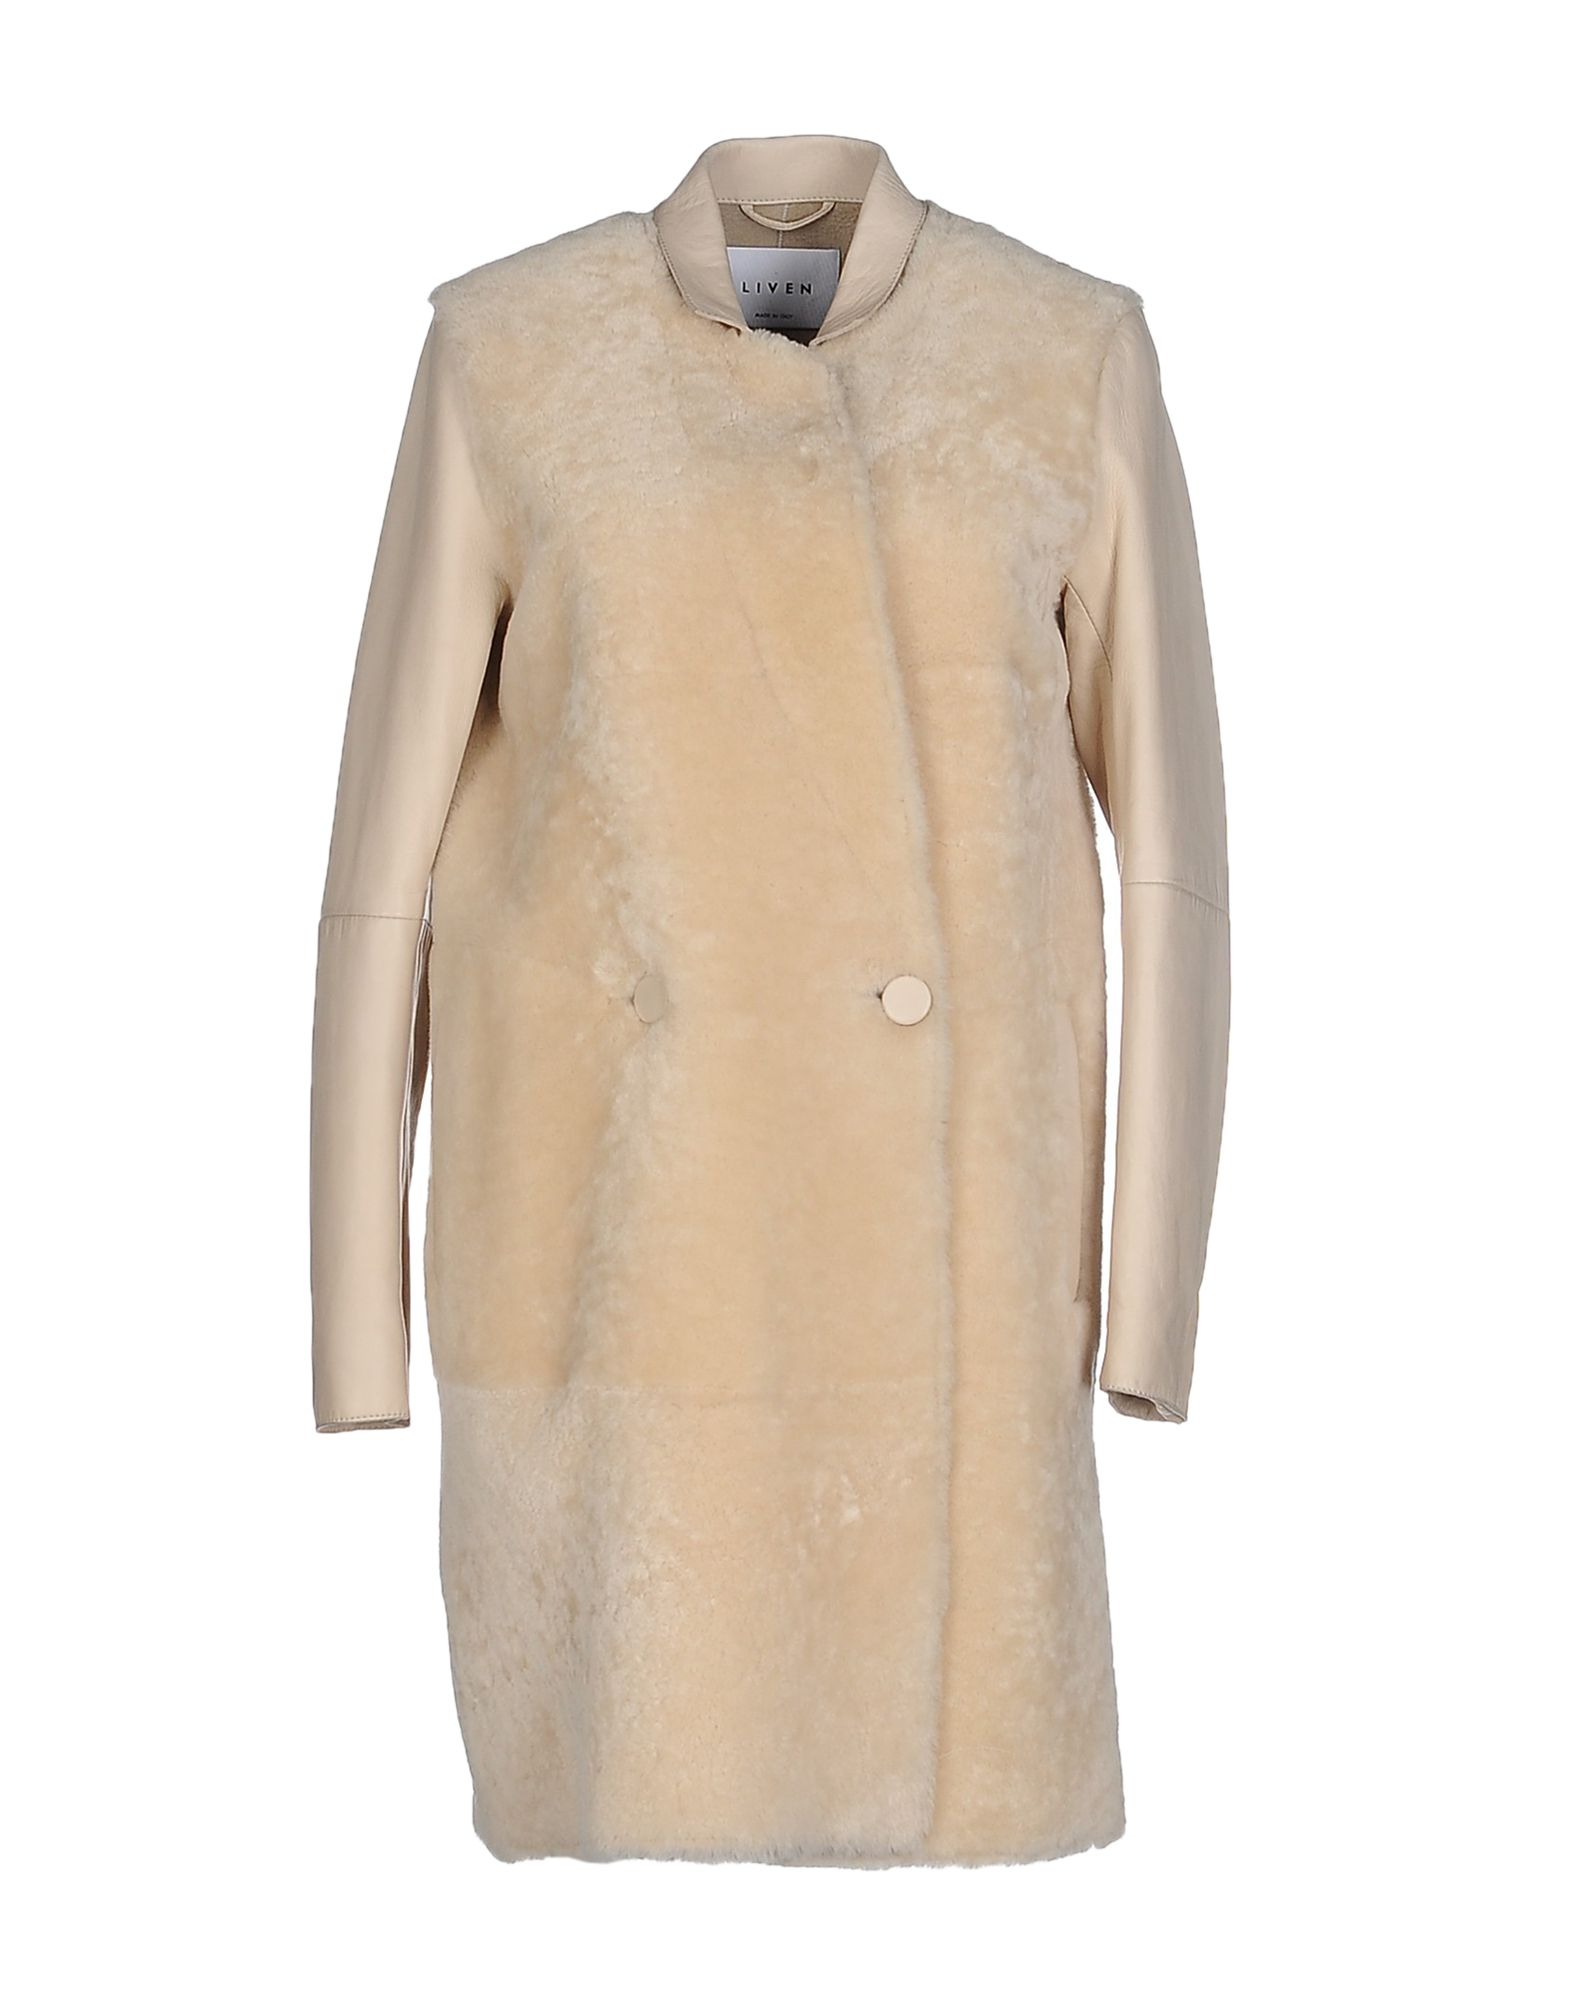 LIVEN Double Breasted Pea Coat in Beige